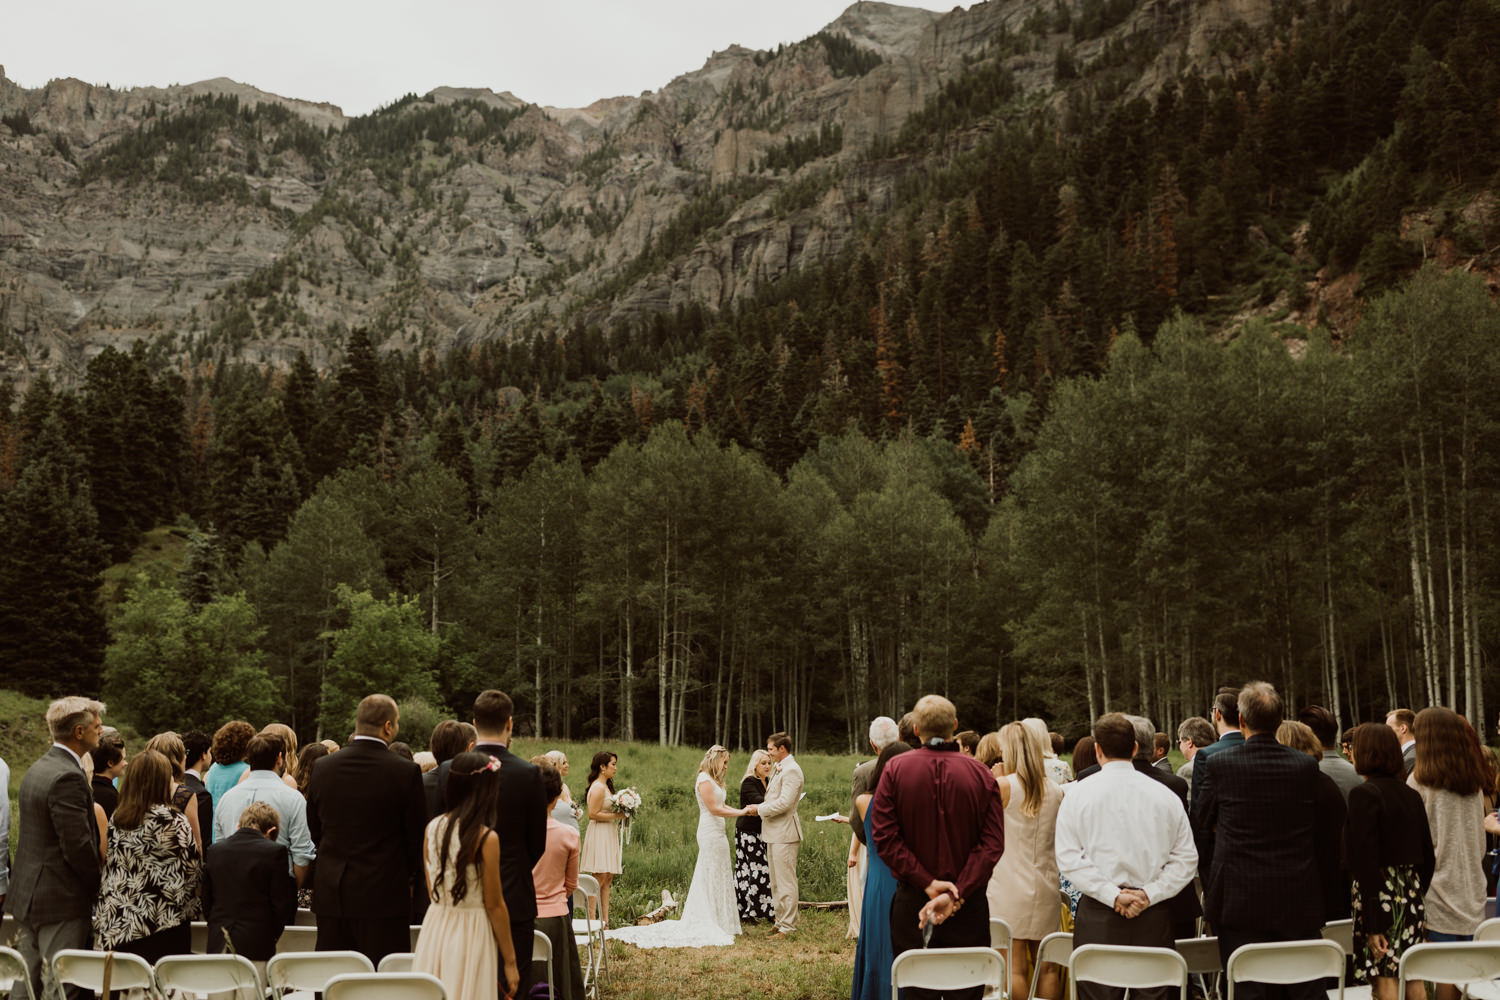 How to Have an Amazing Wedding Without a Venue